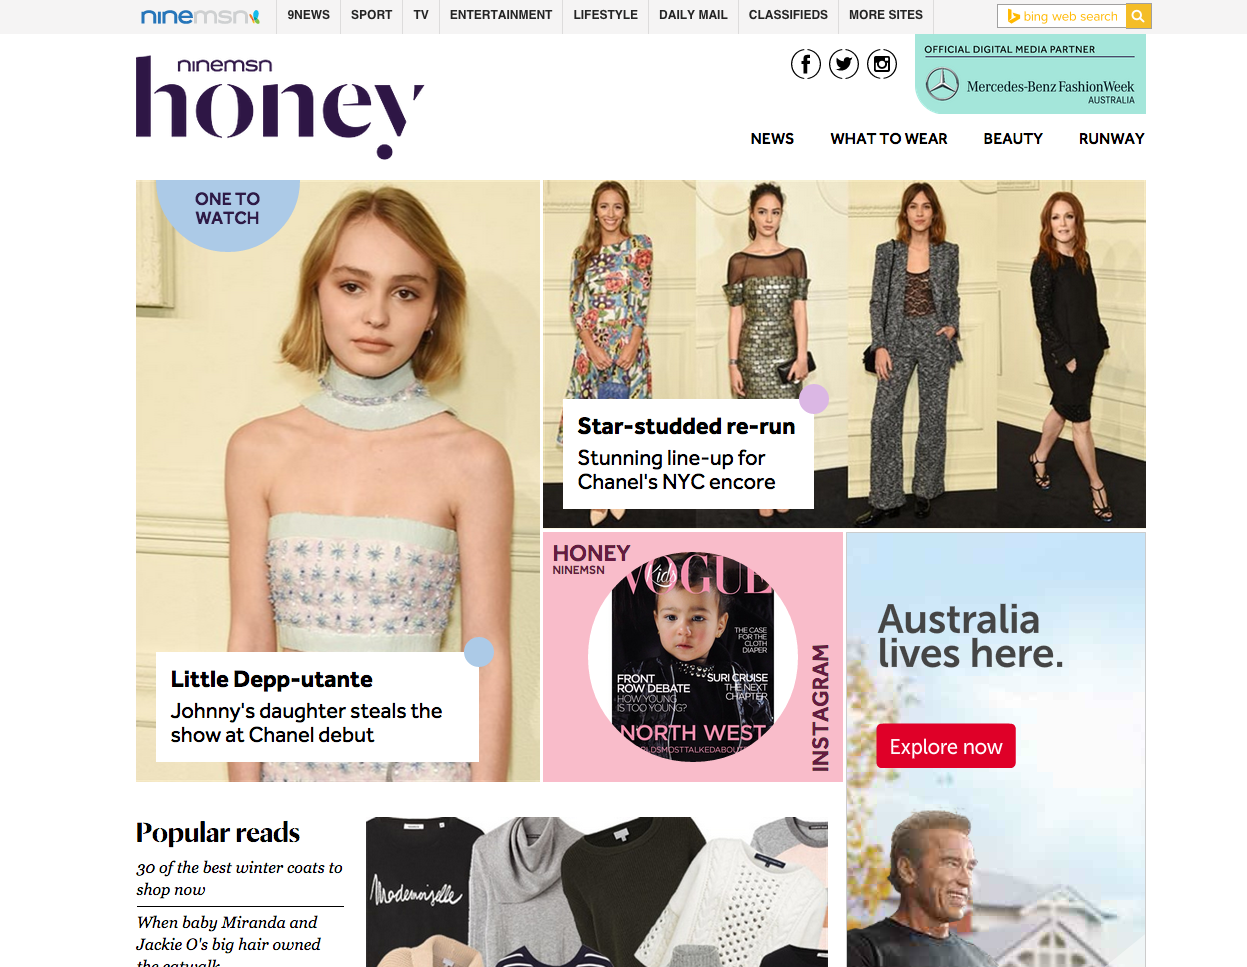 ninemsn honey